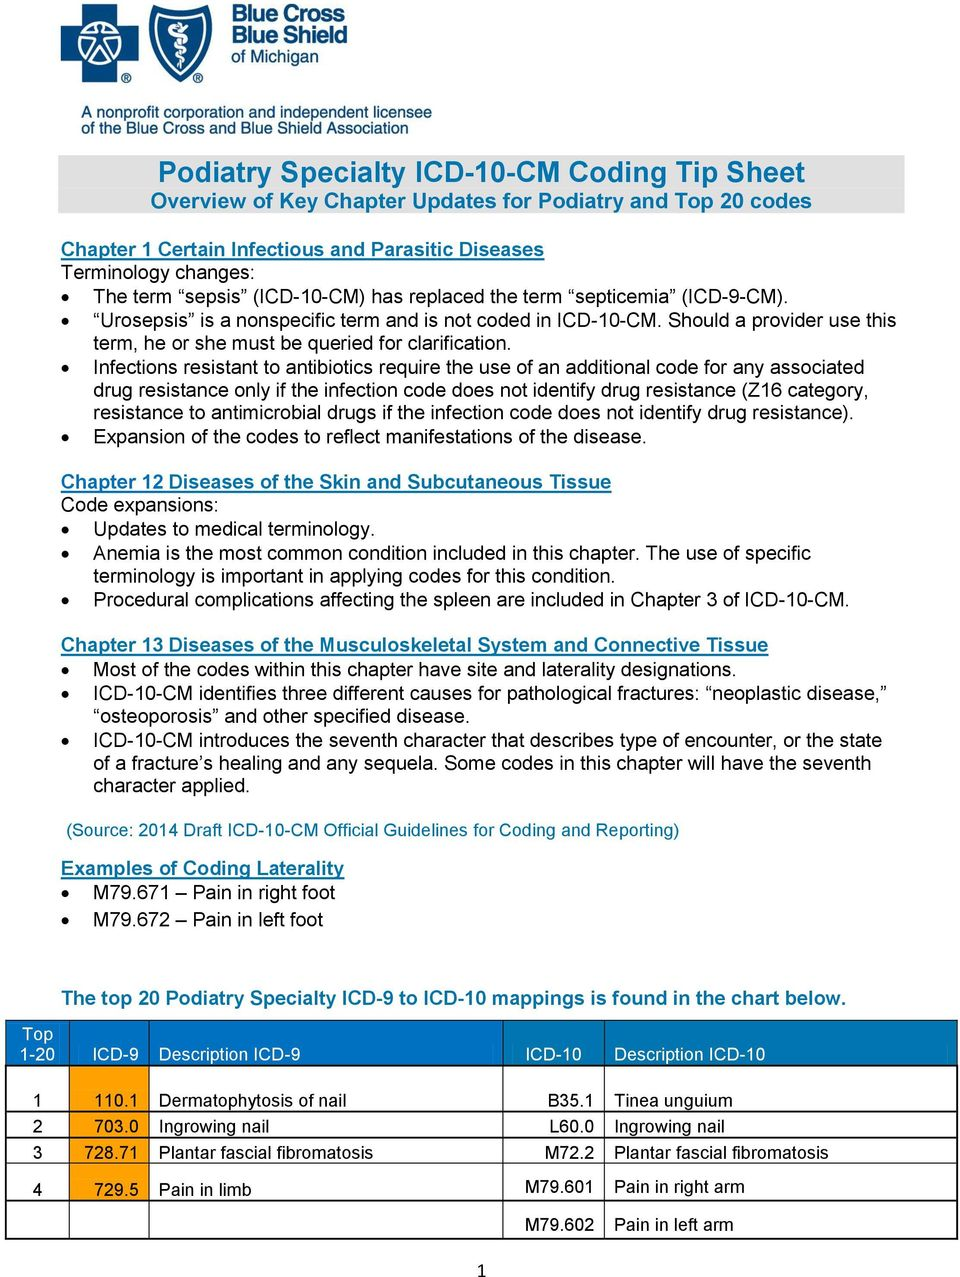 Podiatry Specialty ICD-10-CM Coding Tip Sheet Overview of Key